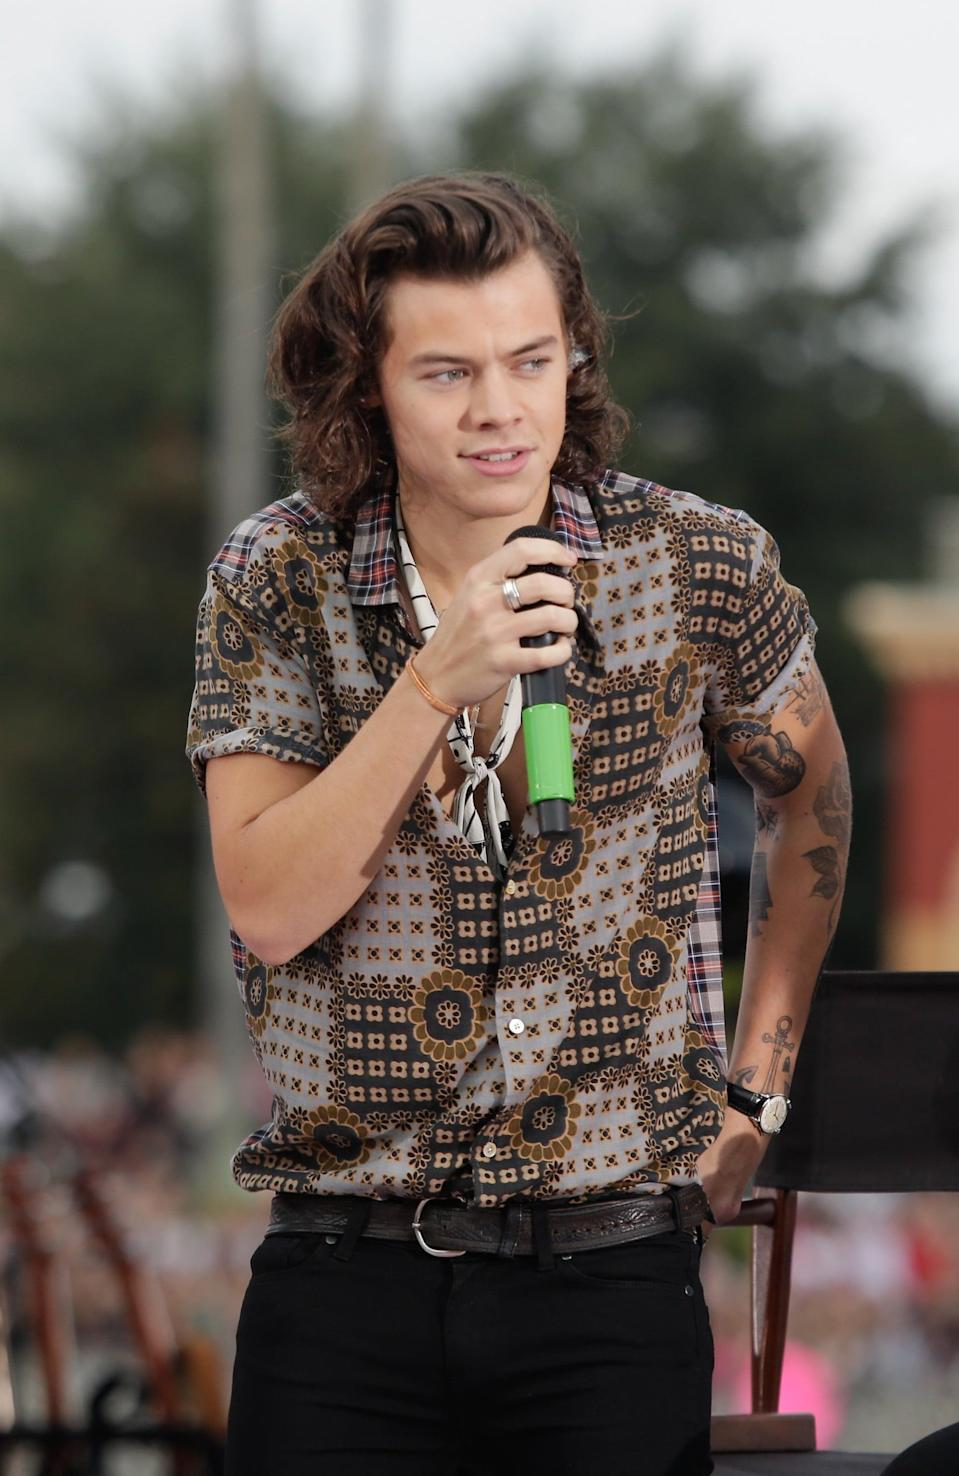 <p>But he got there! He beat the awkward phase and settled into luscious curls.</p>